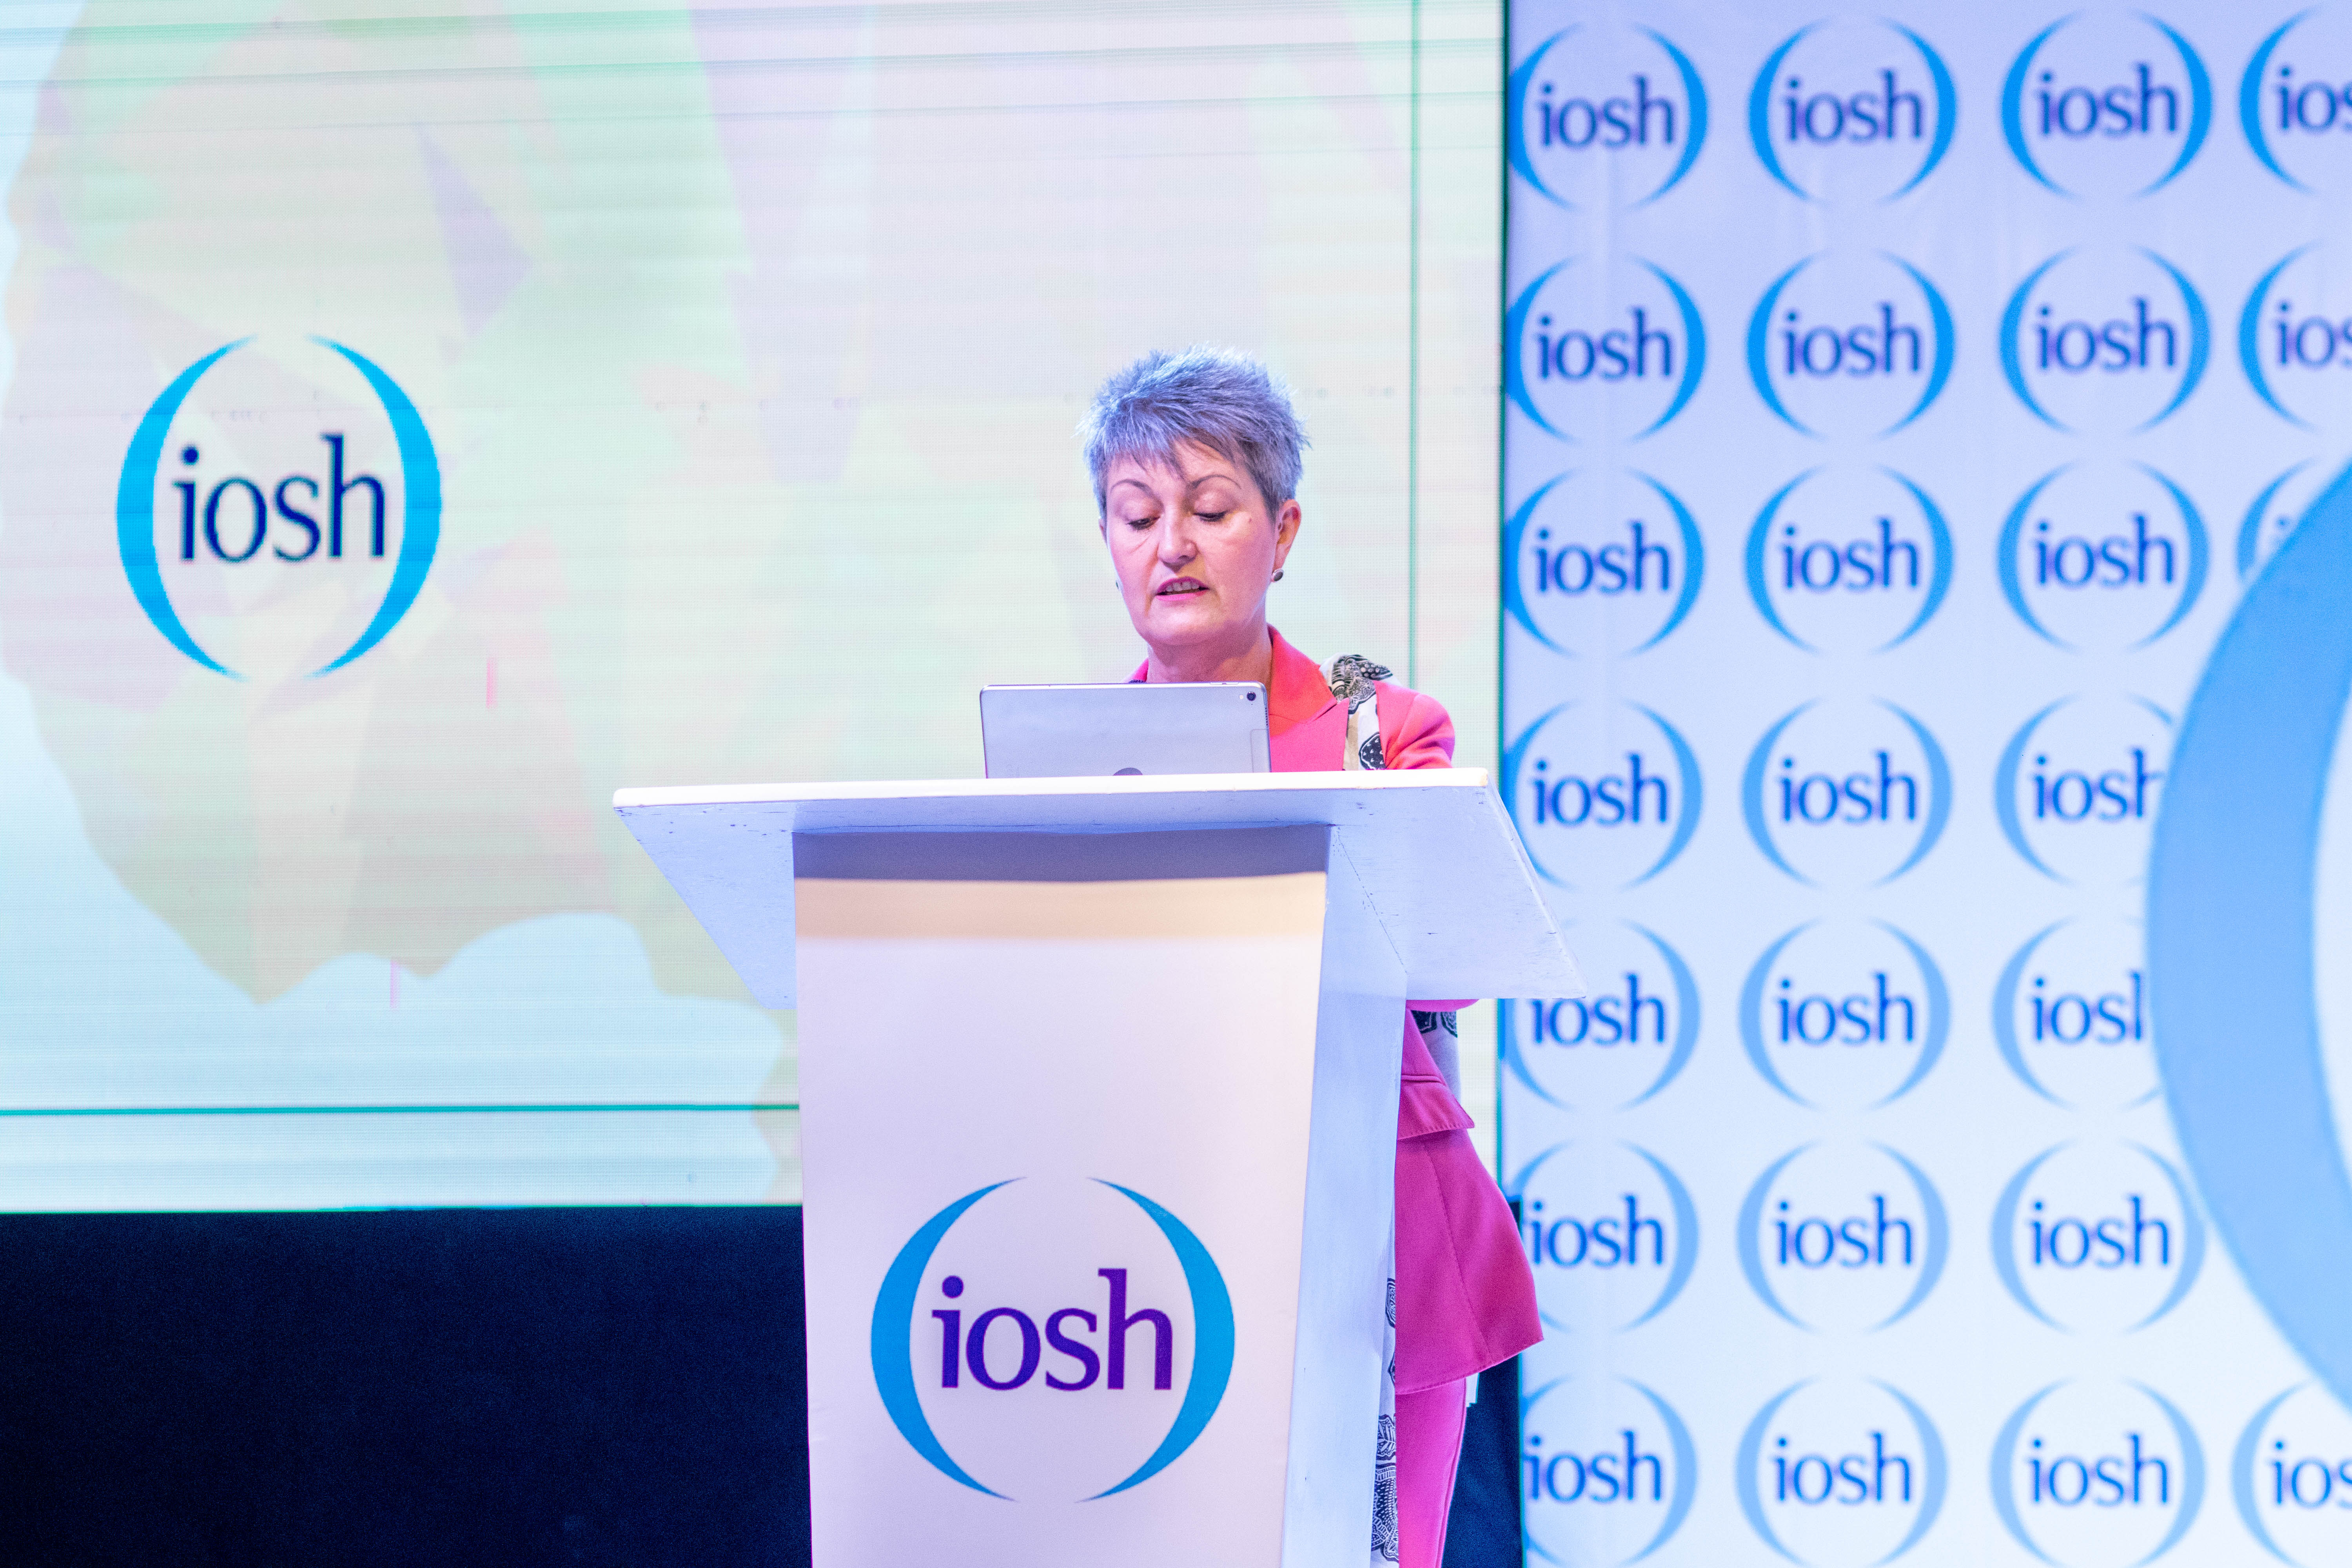 IOSH Harps On Plan To Shape Future Of Occupational Safety In Africa